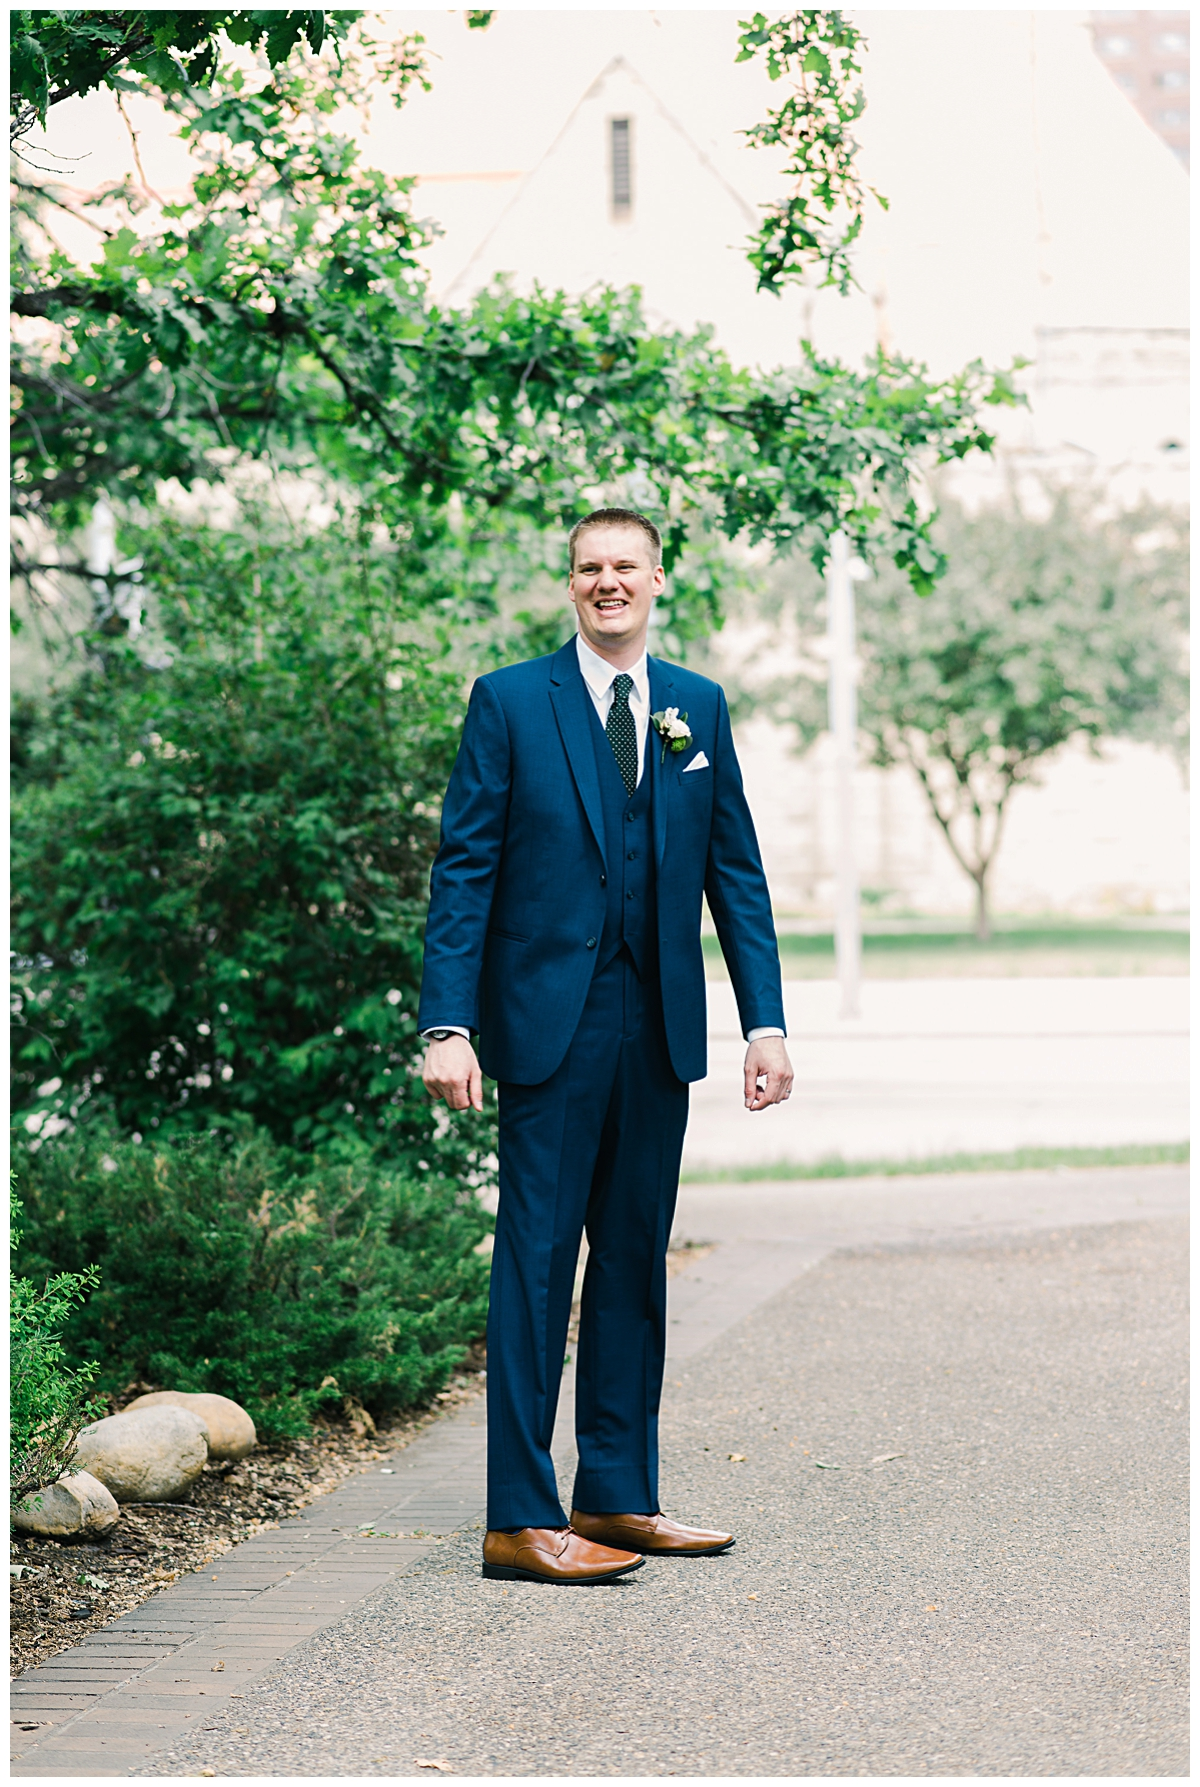 Calgary_Wedding_photographer (11 of 185).jpg